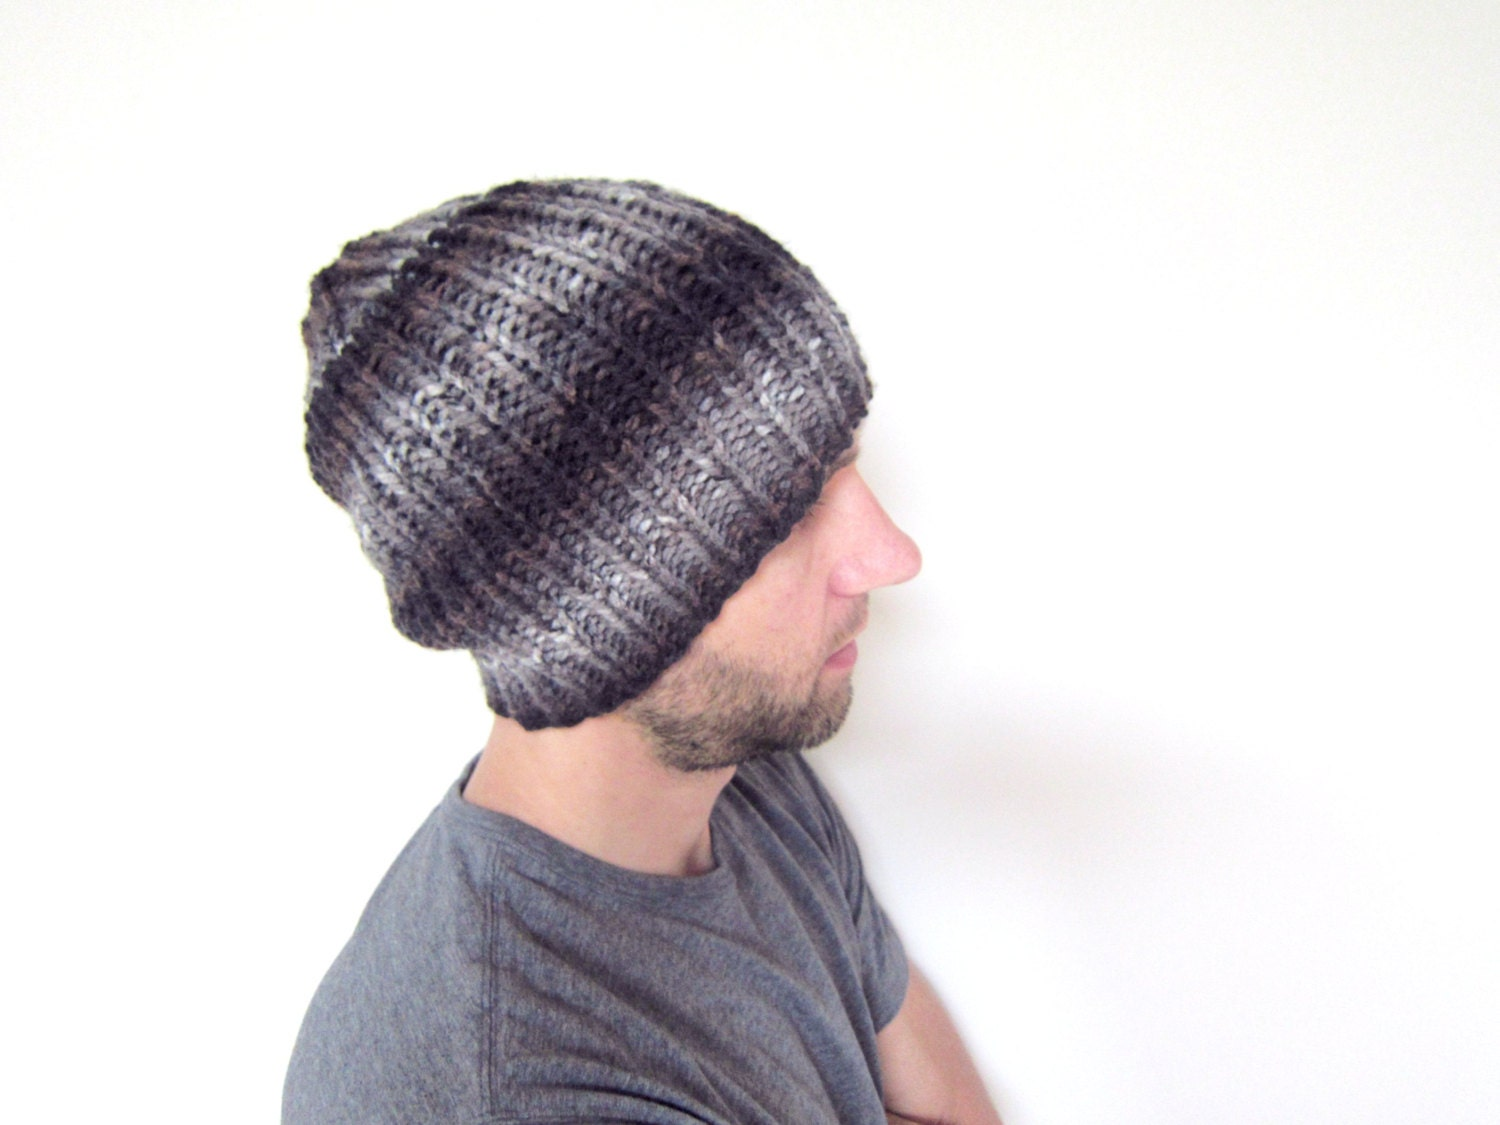 Knitting Pattern For Loose Beanie : Mens Knitted Hat Guys Slouchy Beanie Loose Knit Cap Black Gray